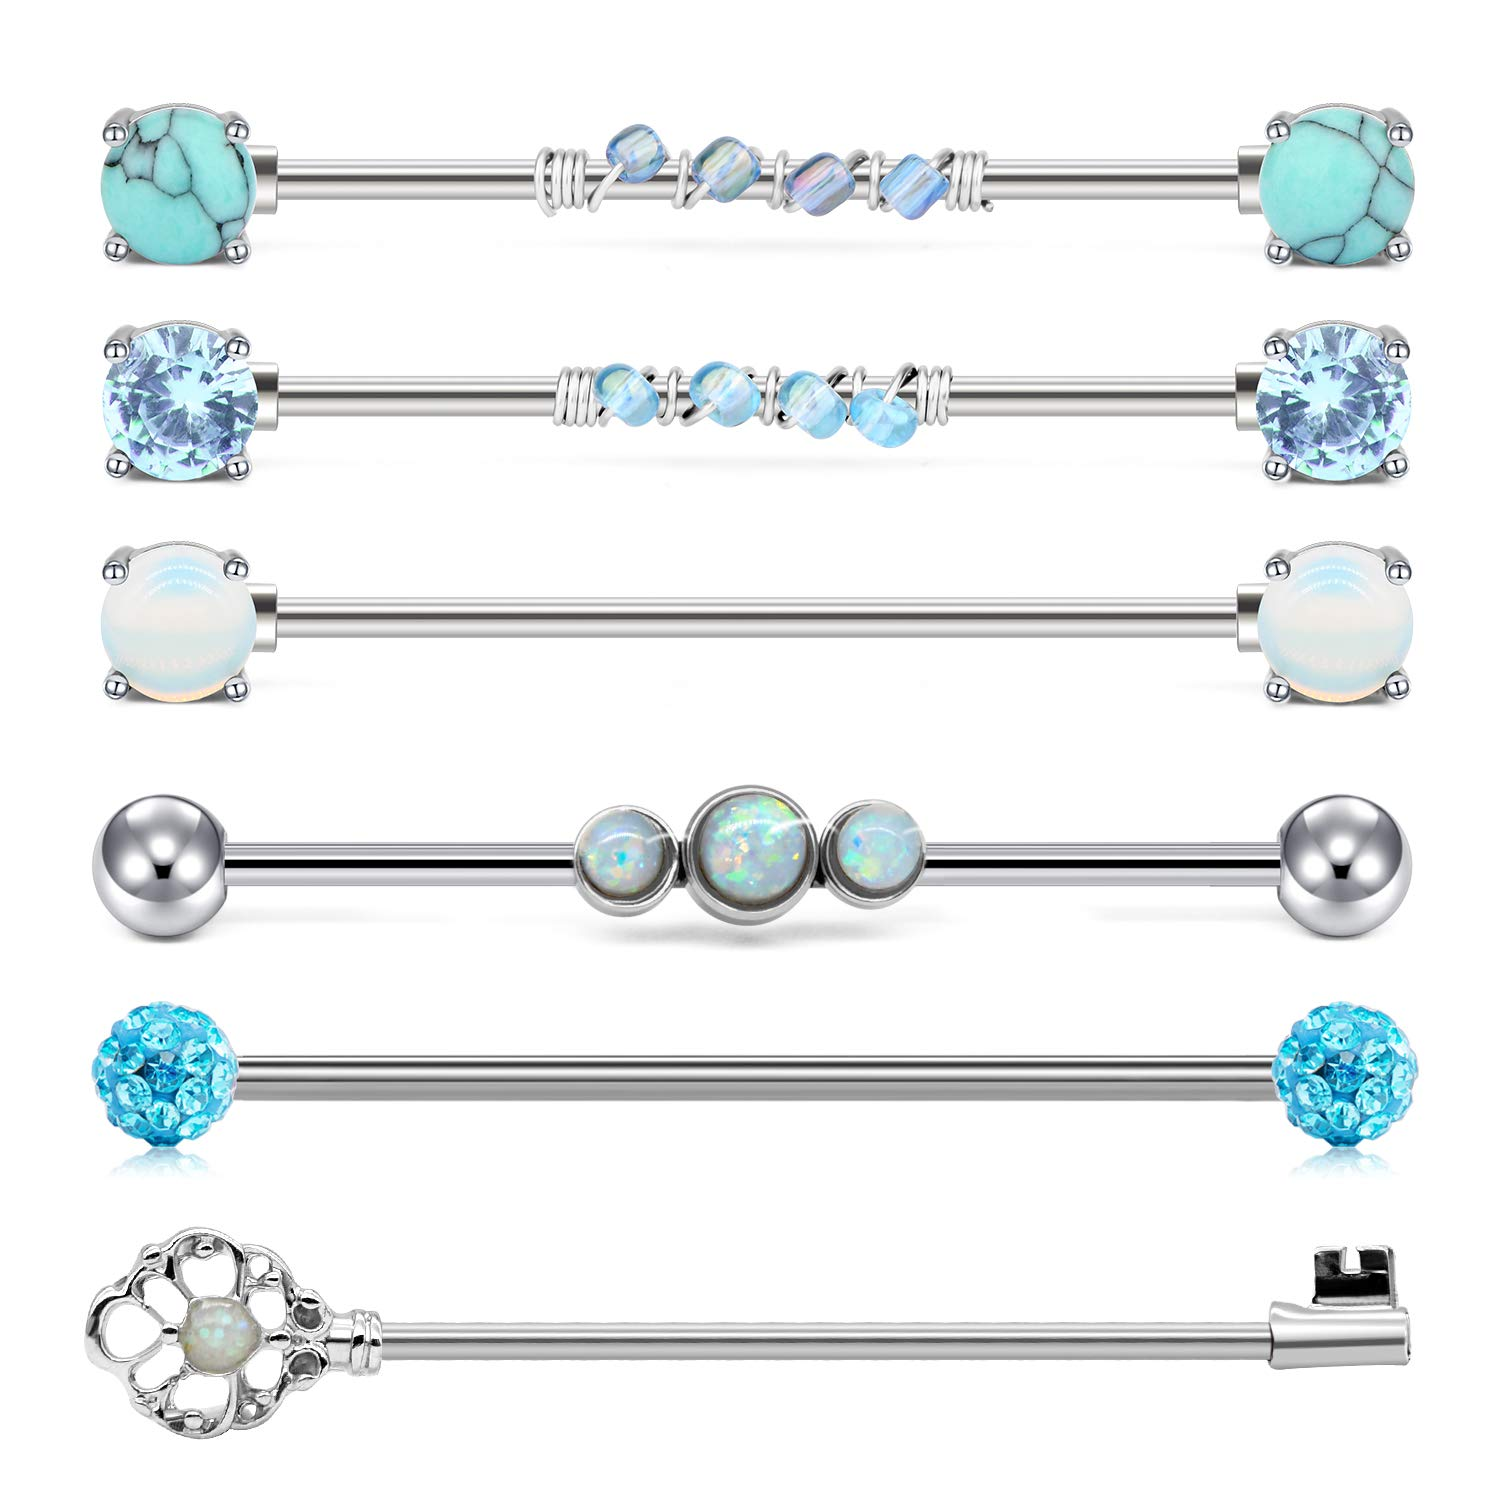 QWALIT Industrial Barbell 14G Cartilage Earrings Surgical Stainless Steel Scaffold Piercings Arrow Turquoise Industrial Piercing Jewelry Bar 38mm 35mm ...